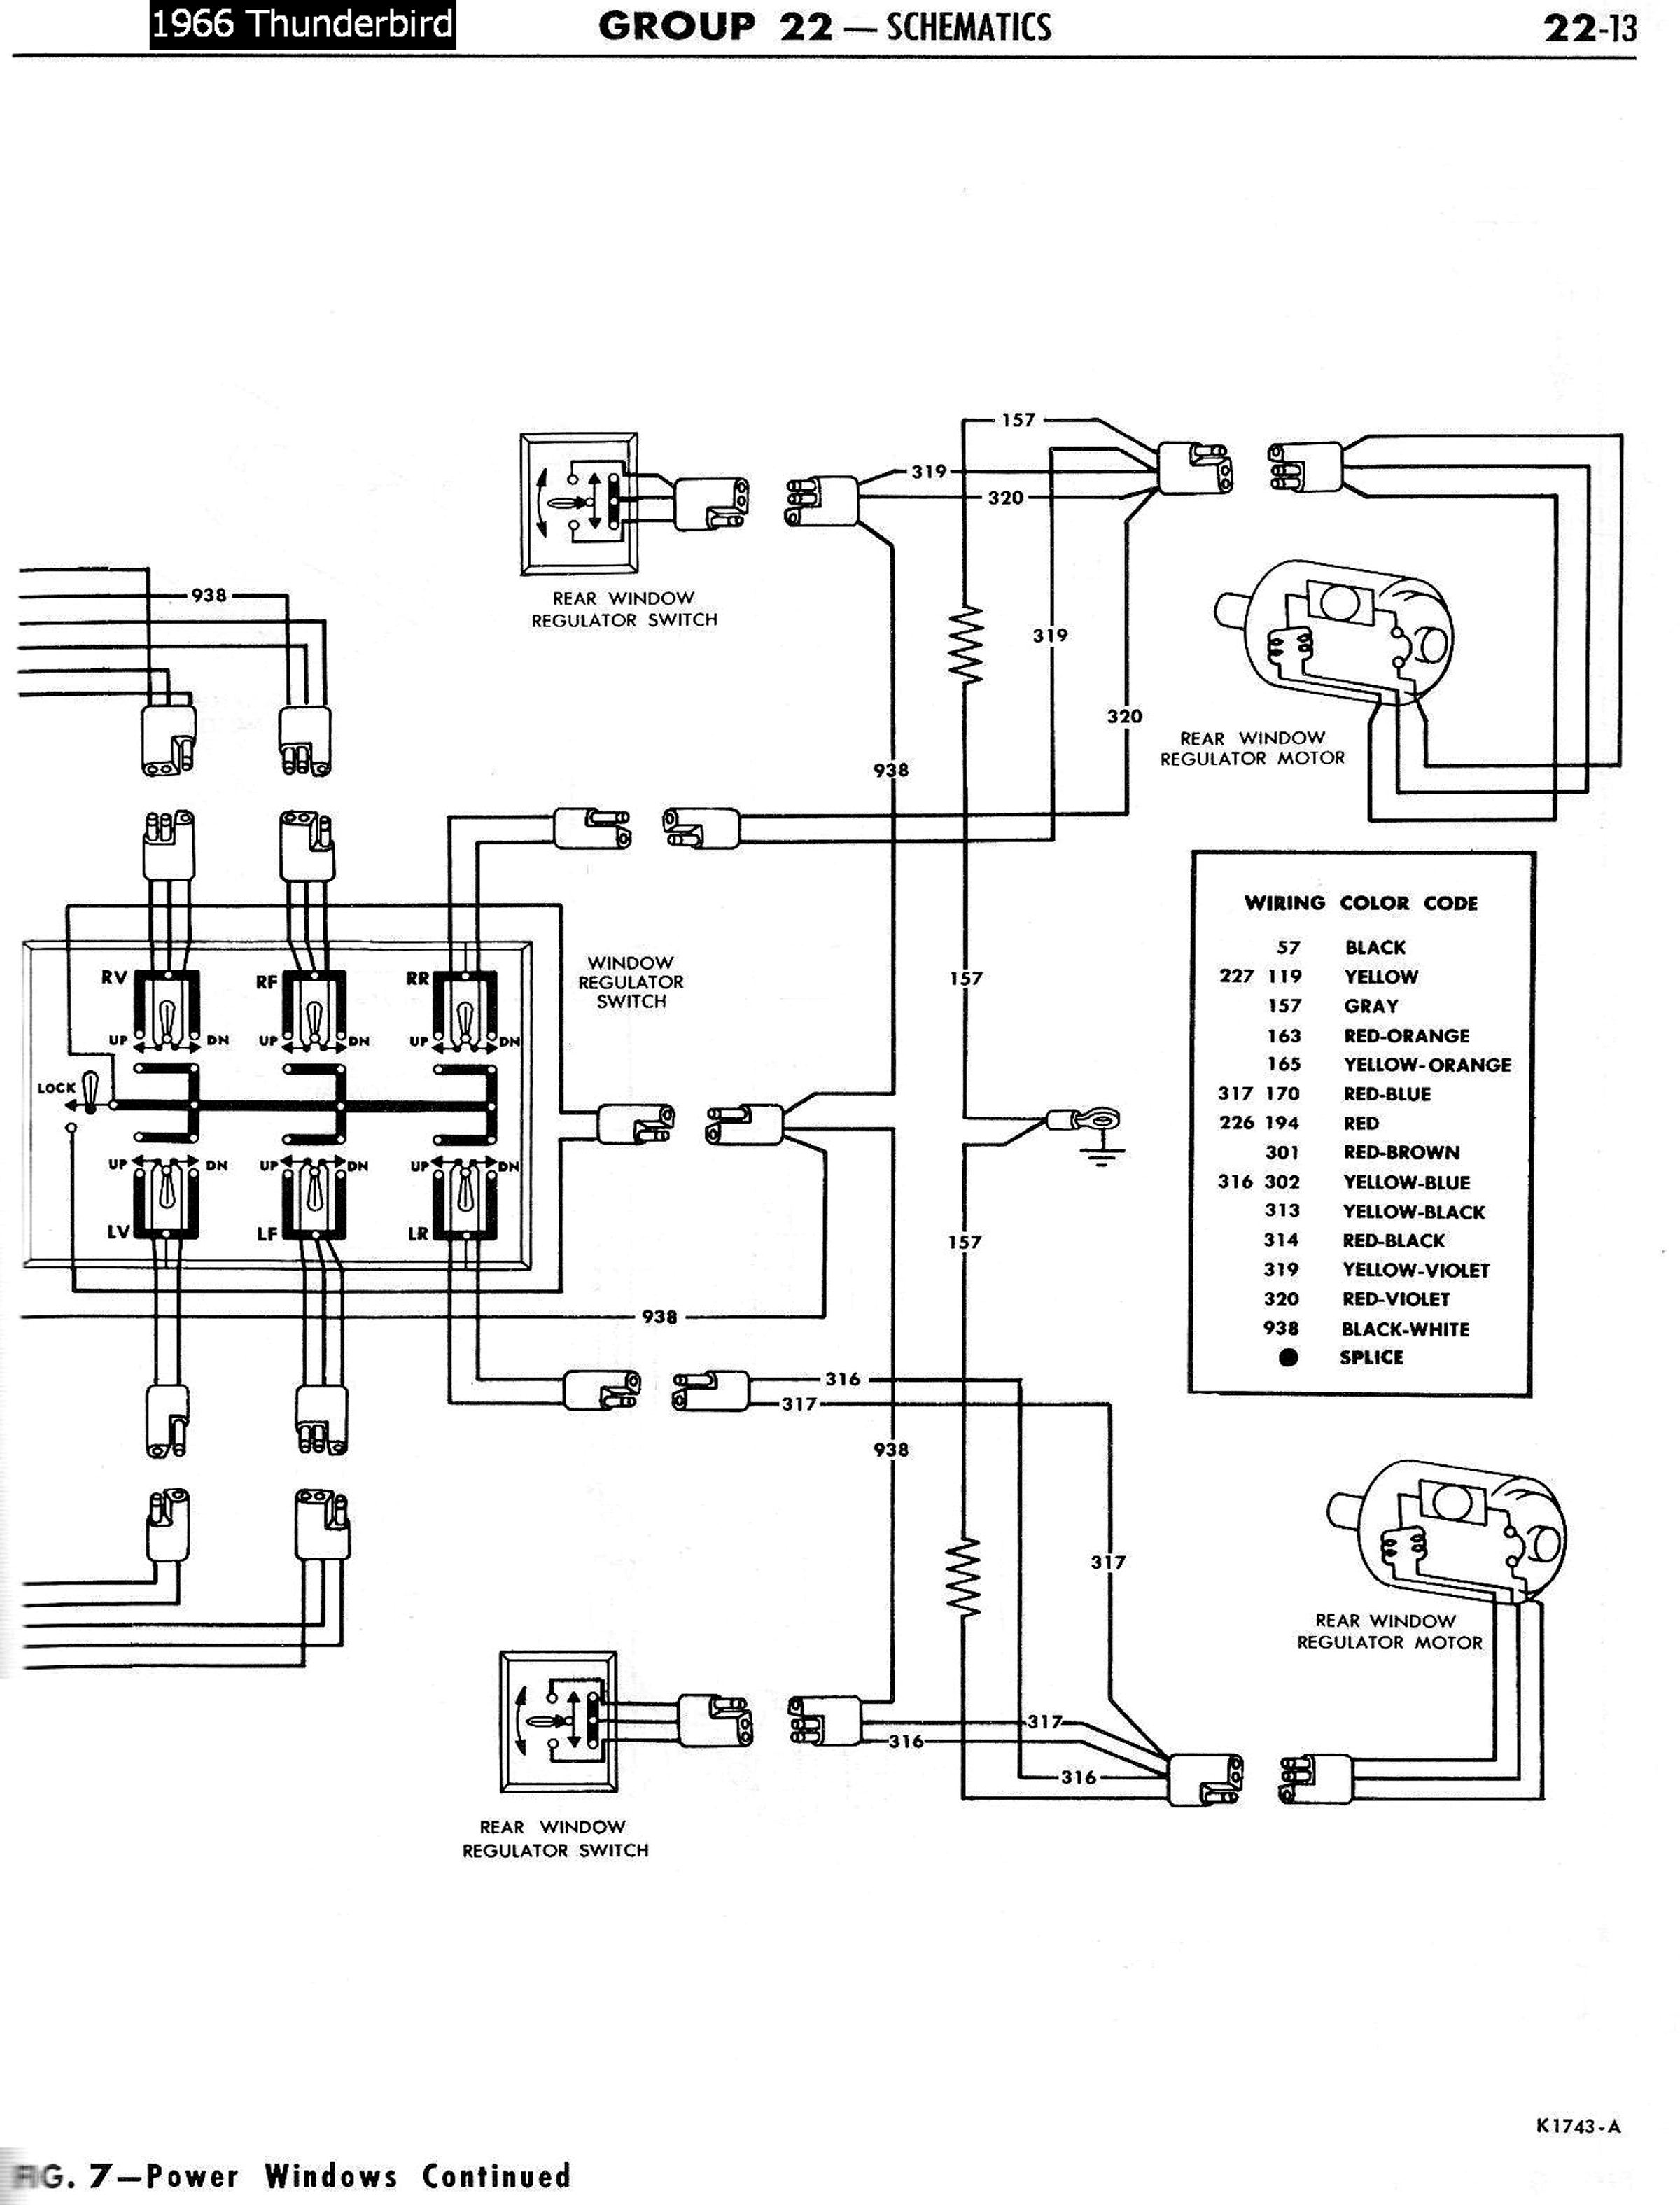 66 Thunderbird Radio Wiring Diagram Free For You Harness Moreover Pioneer 35 Gm